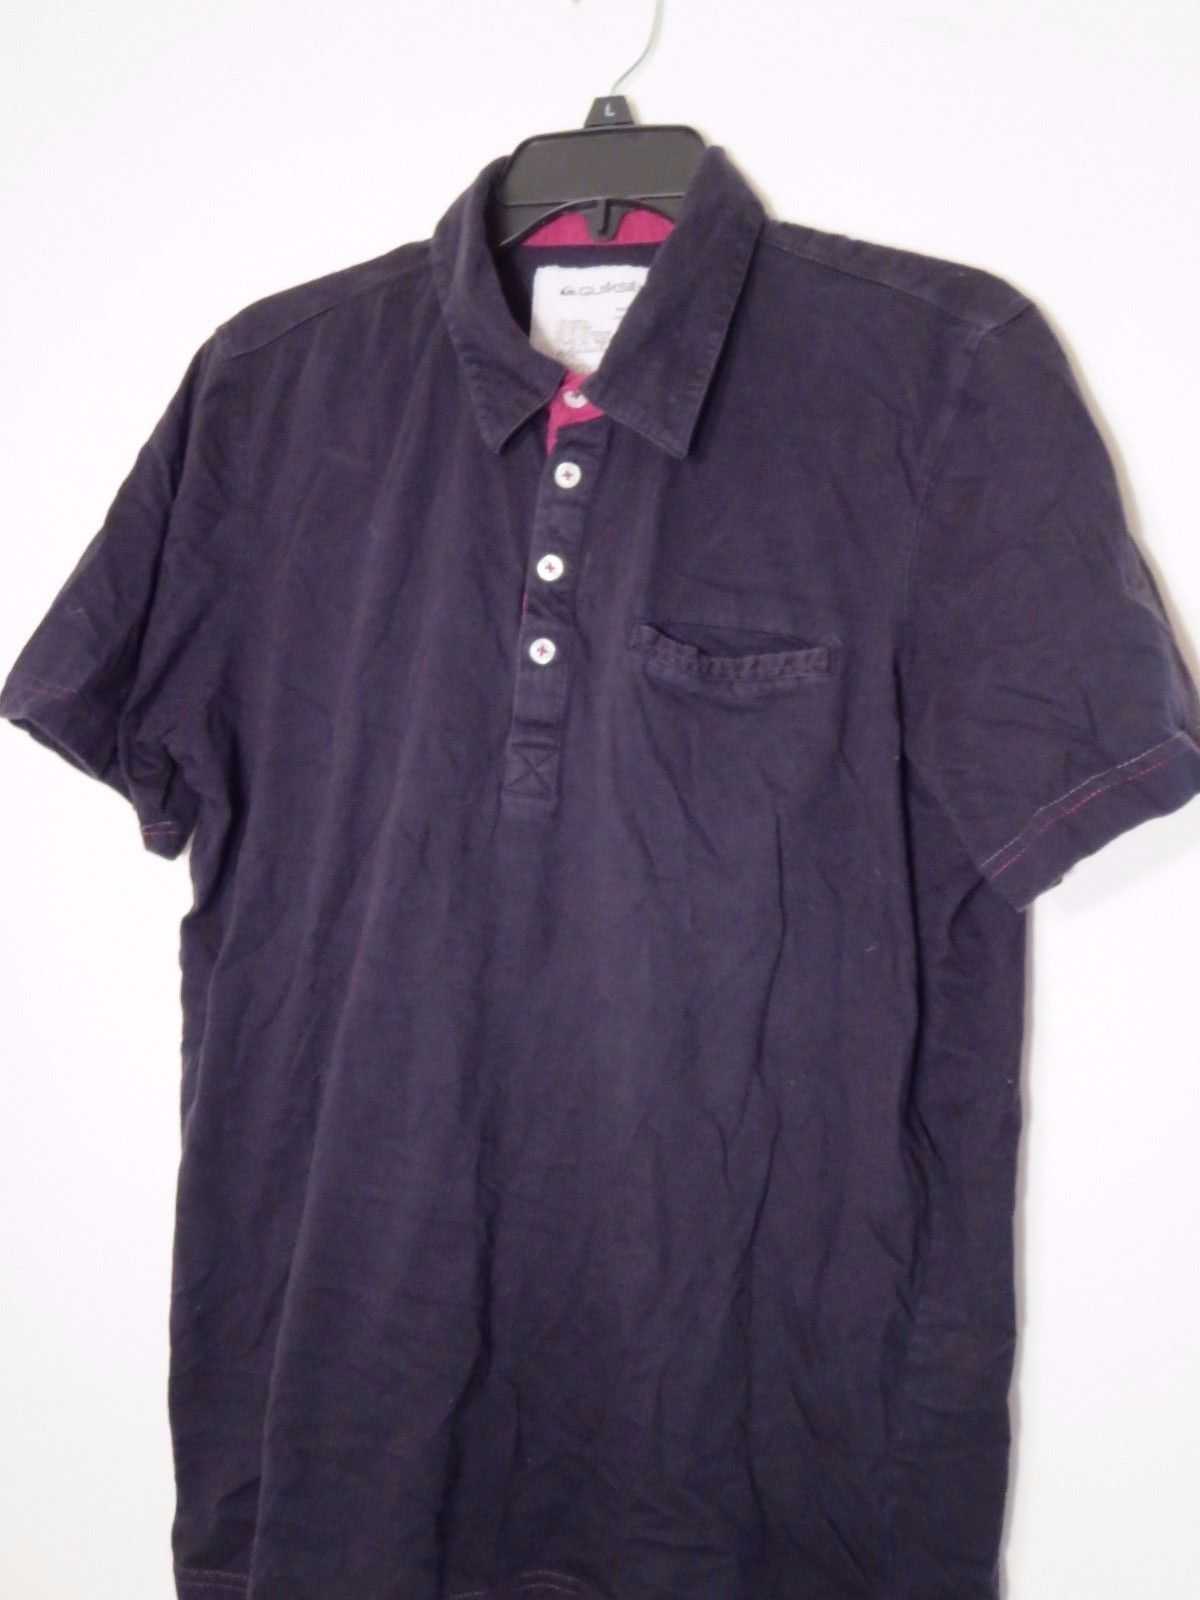 6e506e28ae8 Quiksilver Men s Size M Black S S Polo Shirt and 50 similar items